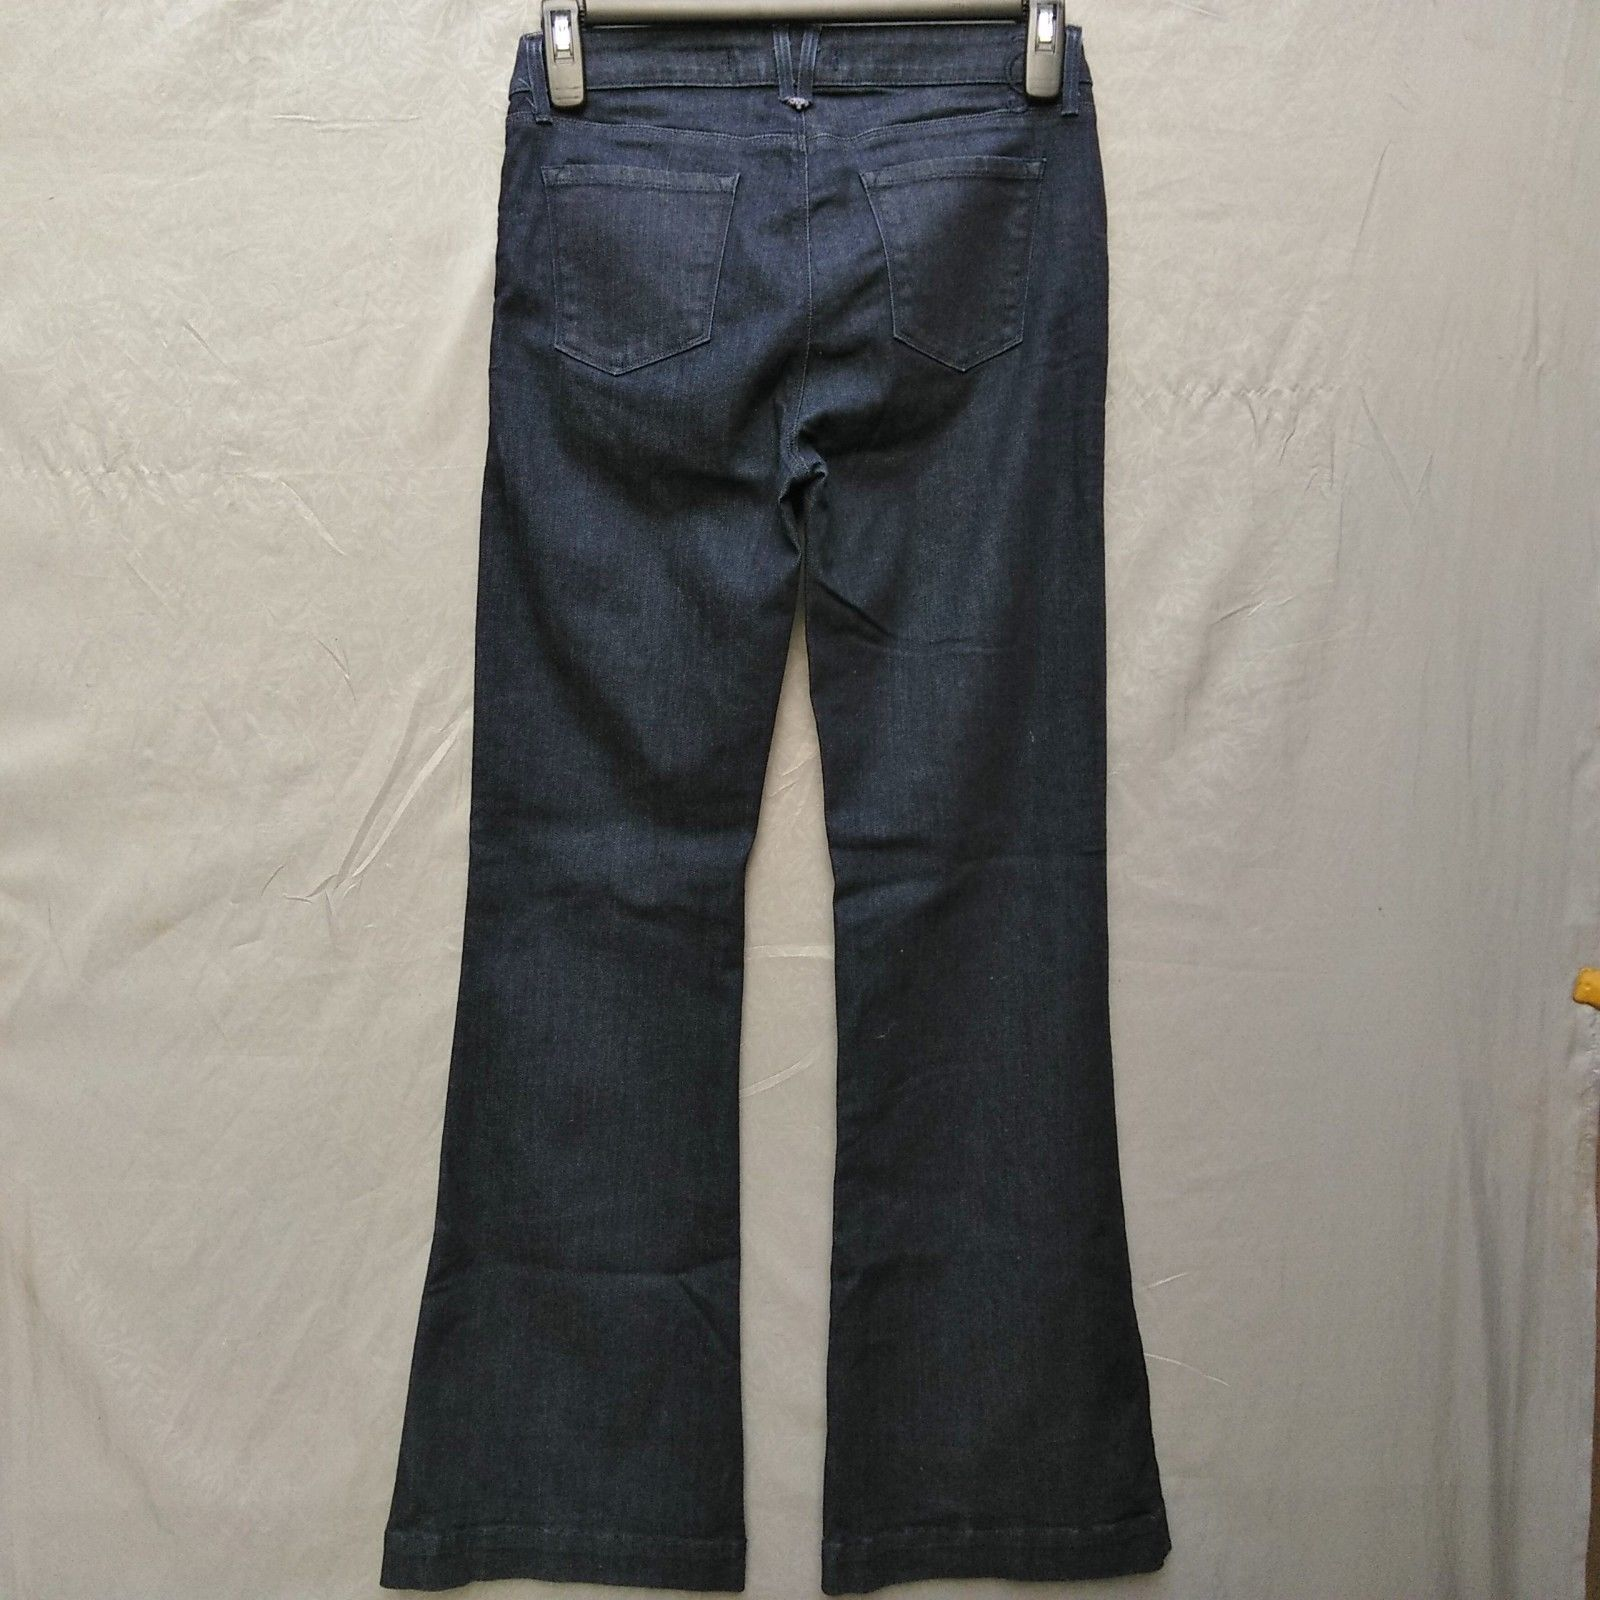 Juicy Jean Couture High Rise Flare Womens Jeans Size 28 Long Dark Wash    image 2